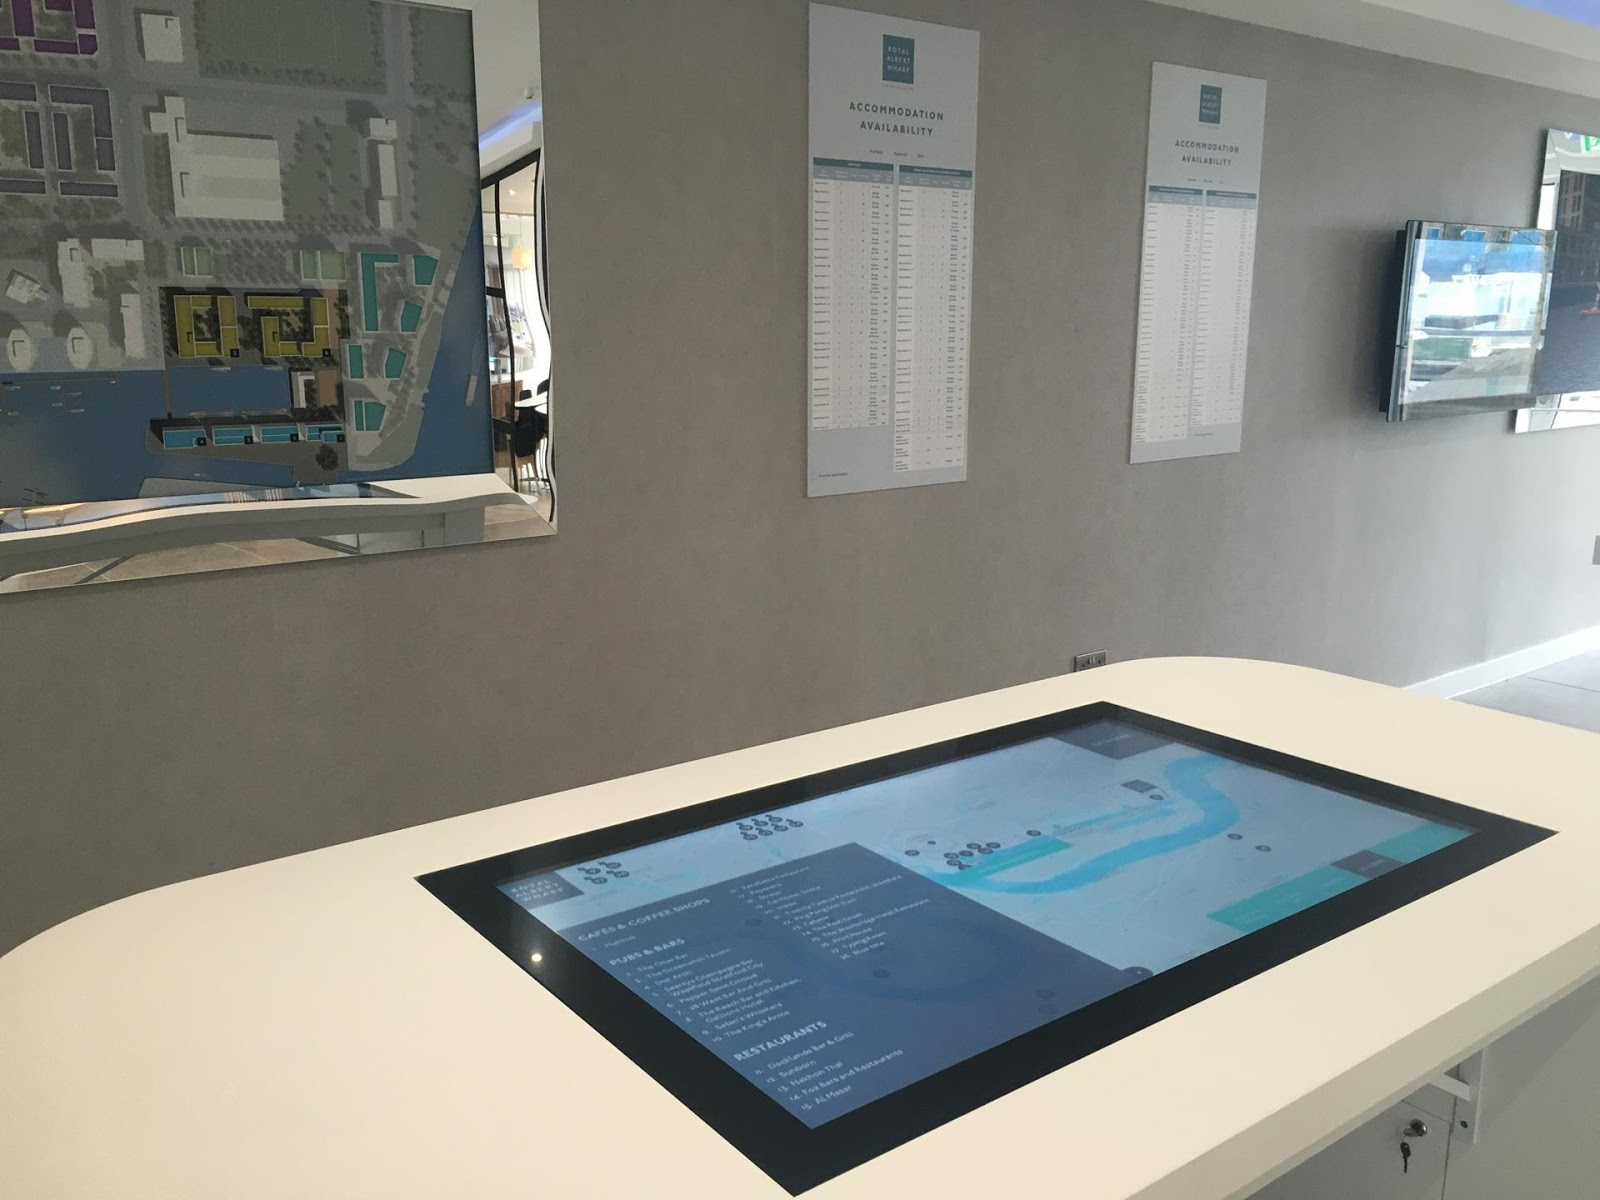 Interactive Presentation was built to showcase residential properties